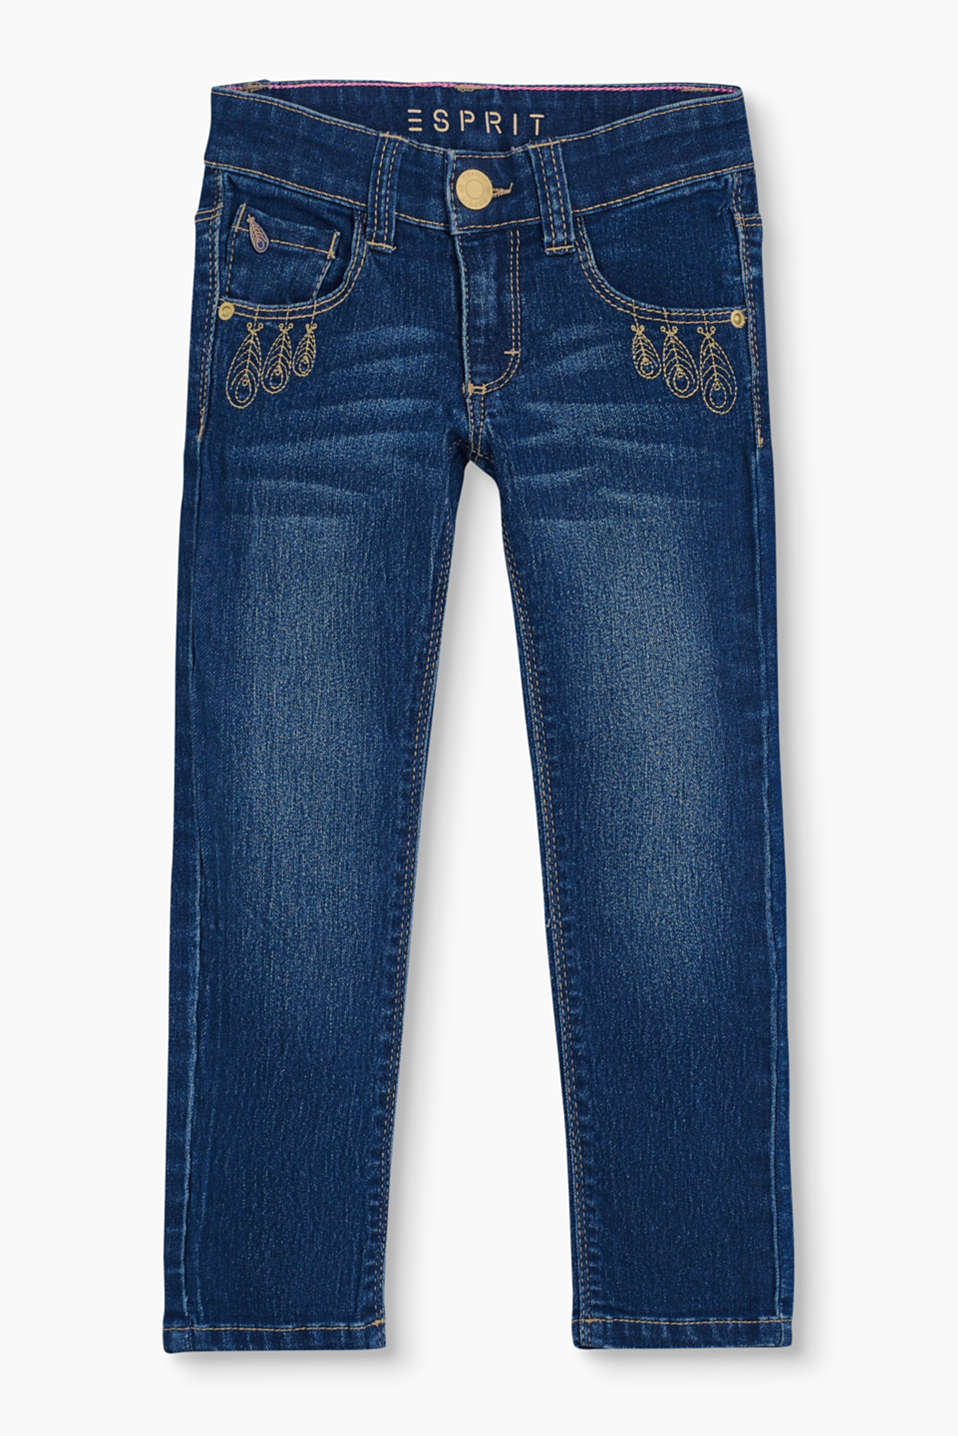 Appliquéd feathers on the front pockets give these stretchy jeans that special girly touch.